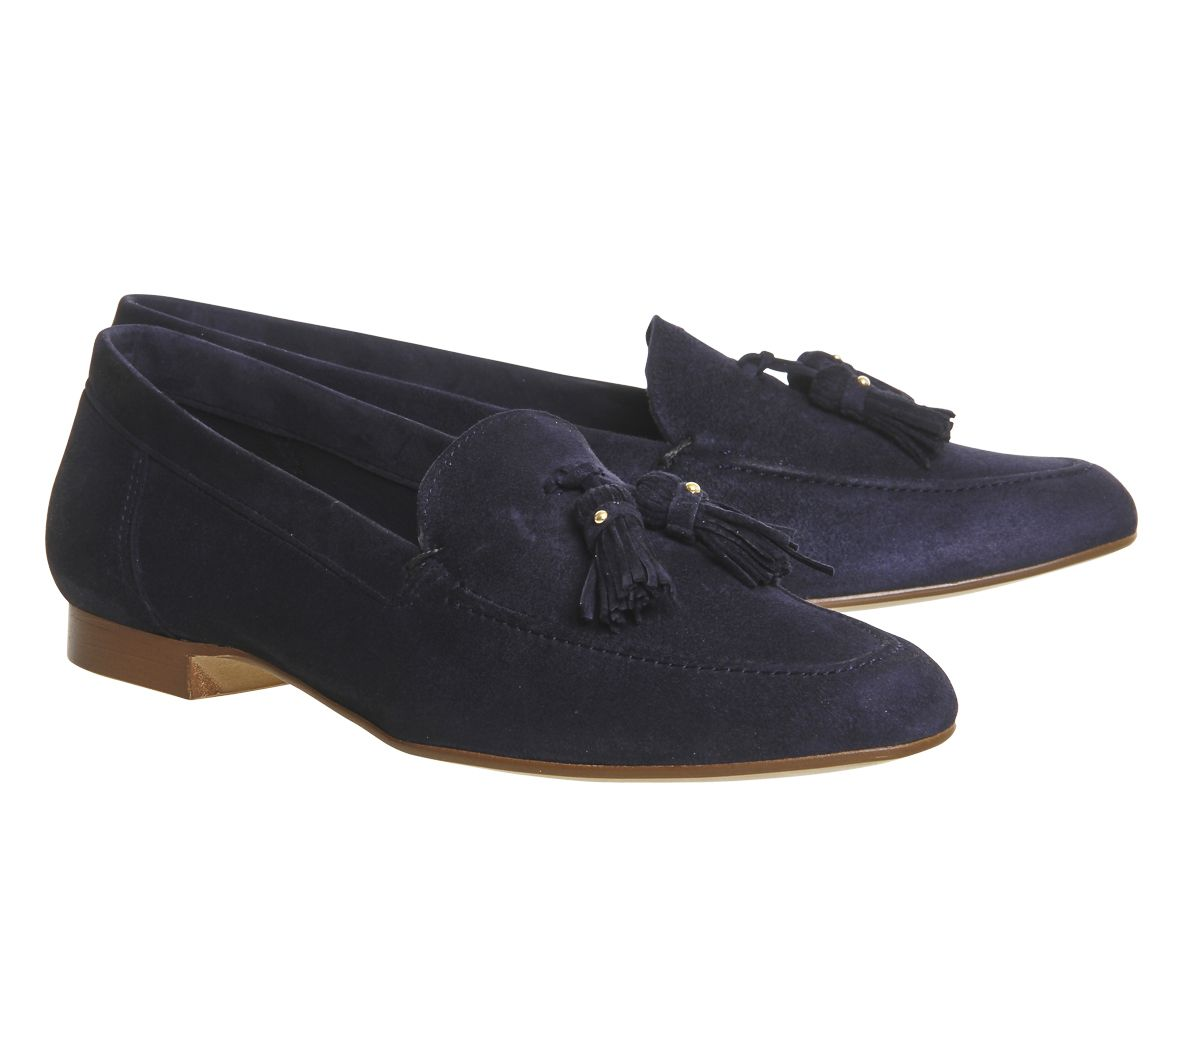 Womens Office Retro Tassel Loafers Navy Suede Flats